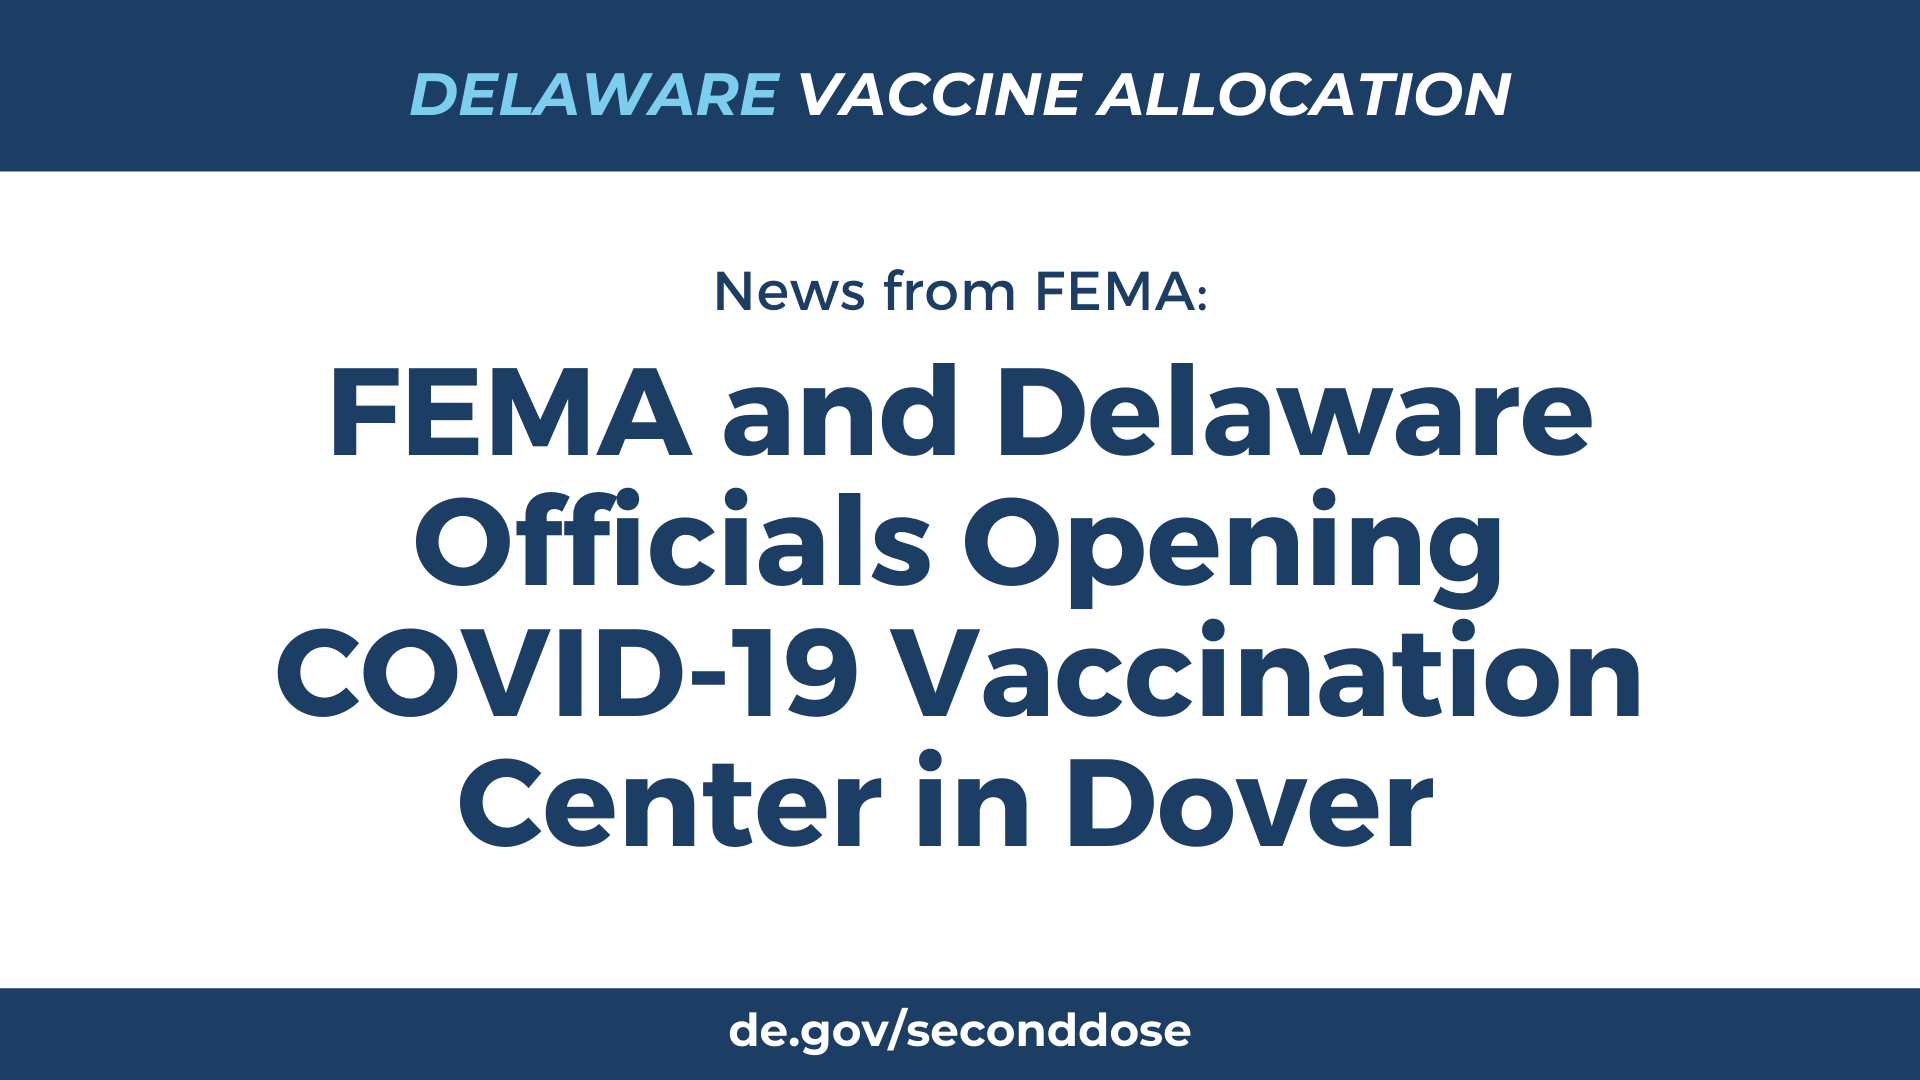 NEWS FROM FEMA: FEMA and Delaware Officials Opening COVID-19 Vaccination Center in Dover - news.delaware.gov